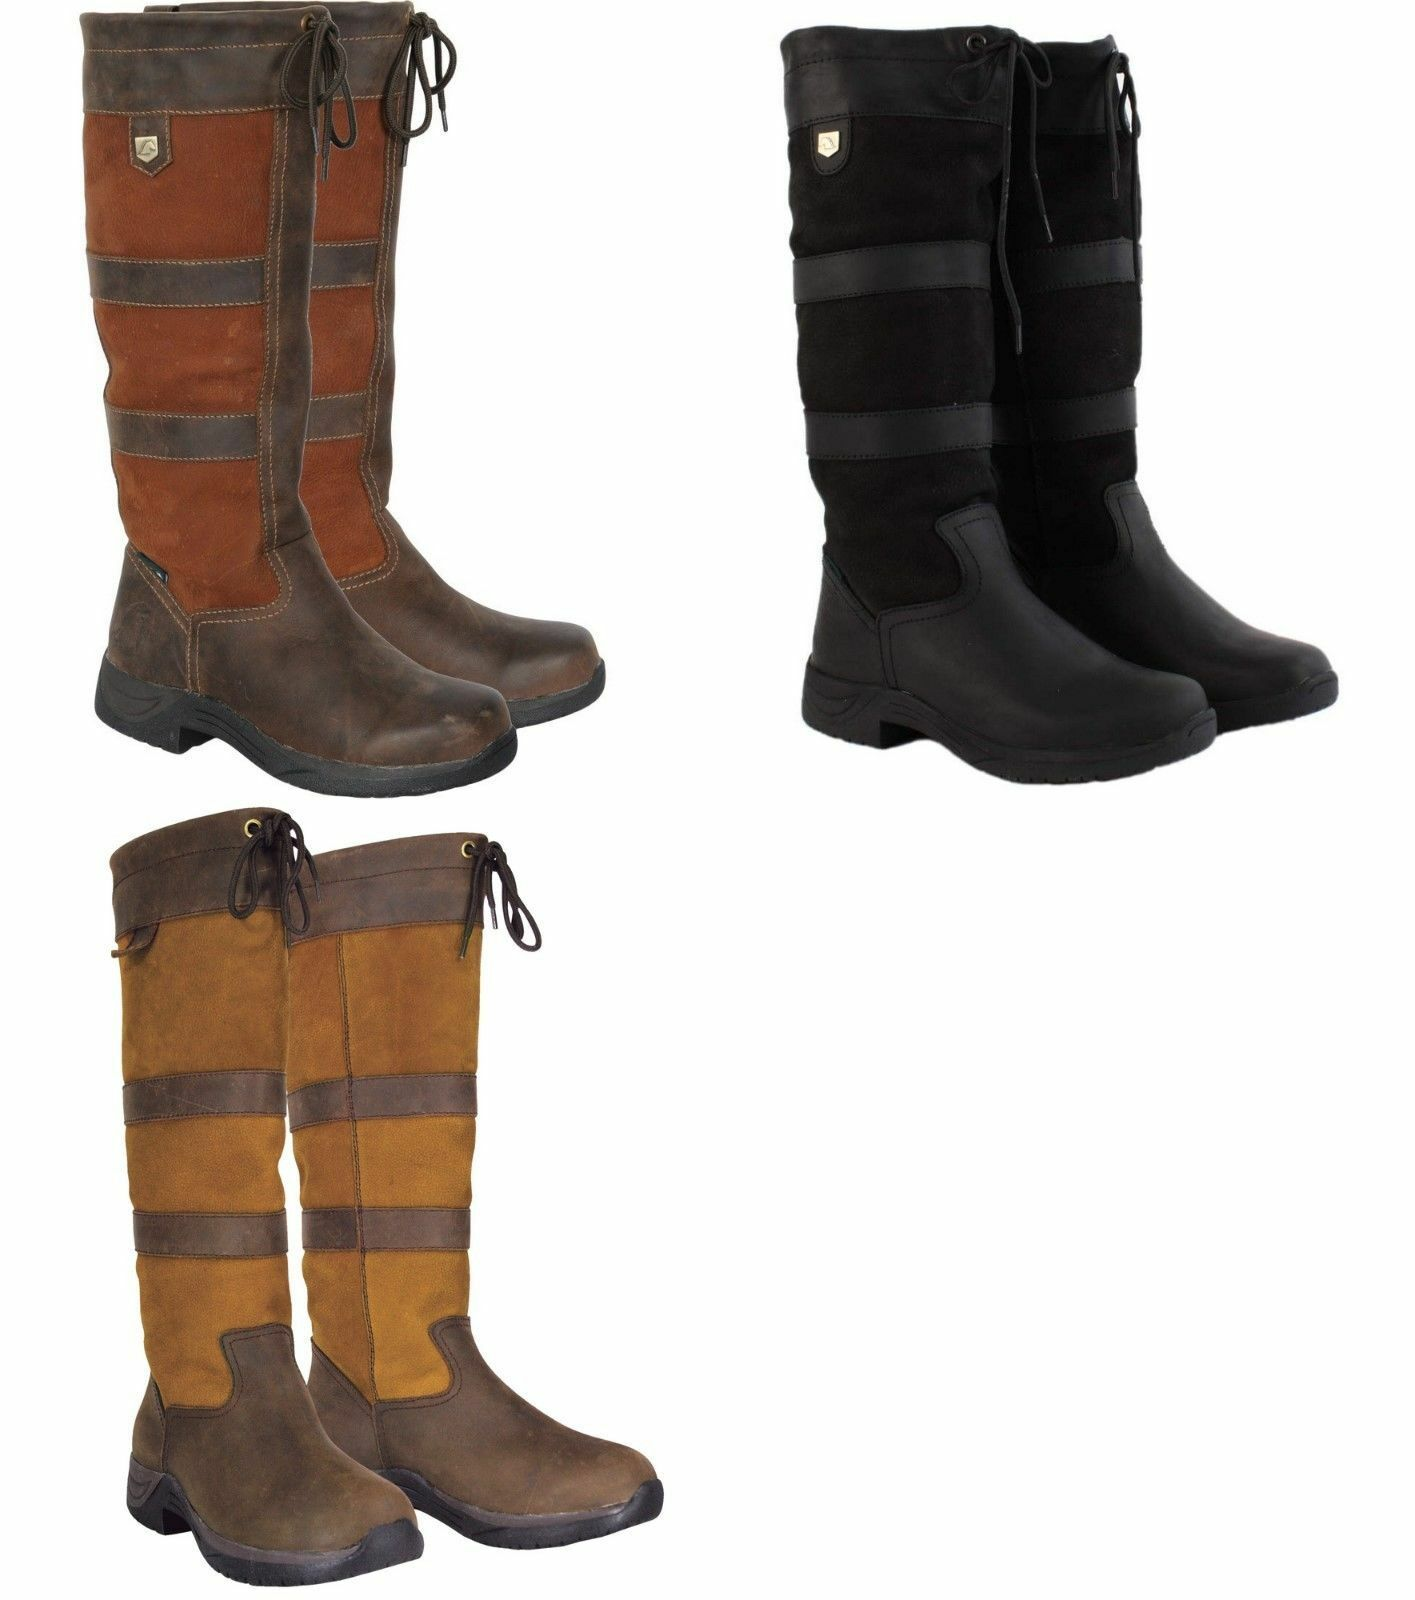 DUBLIN RIVER BOOTS RIDING YARD STABLE WALKING LEATHER COUNTRY